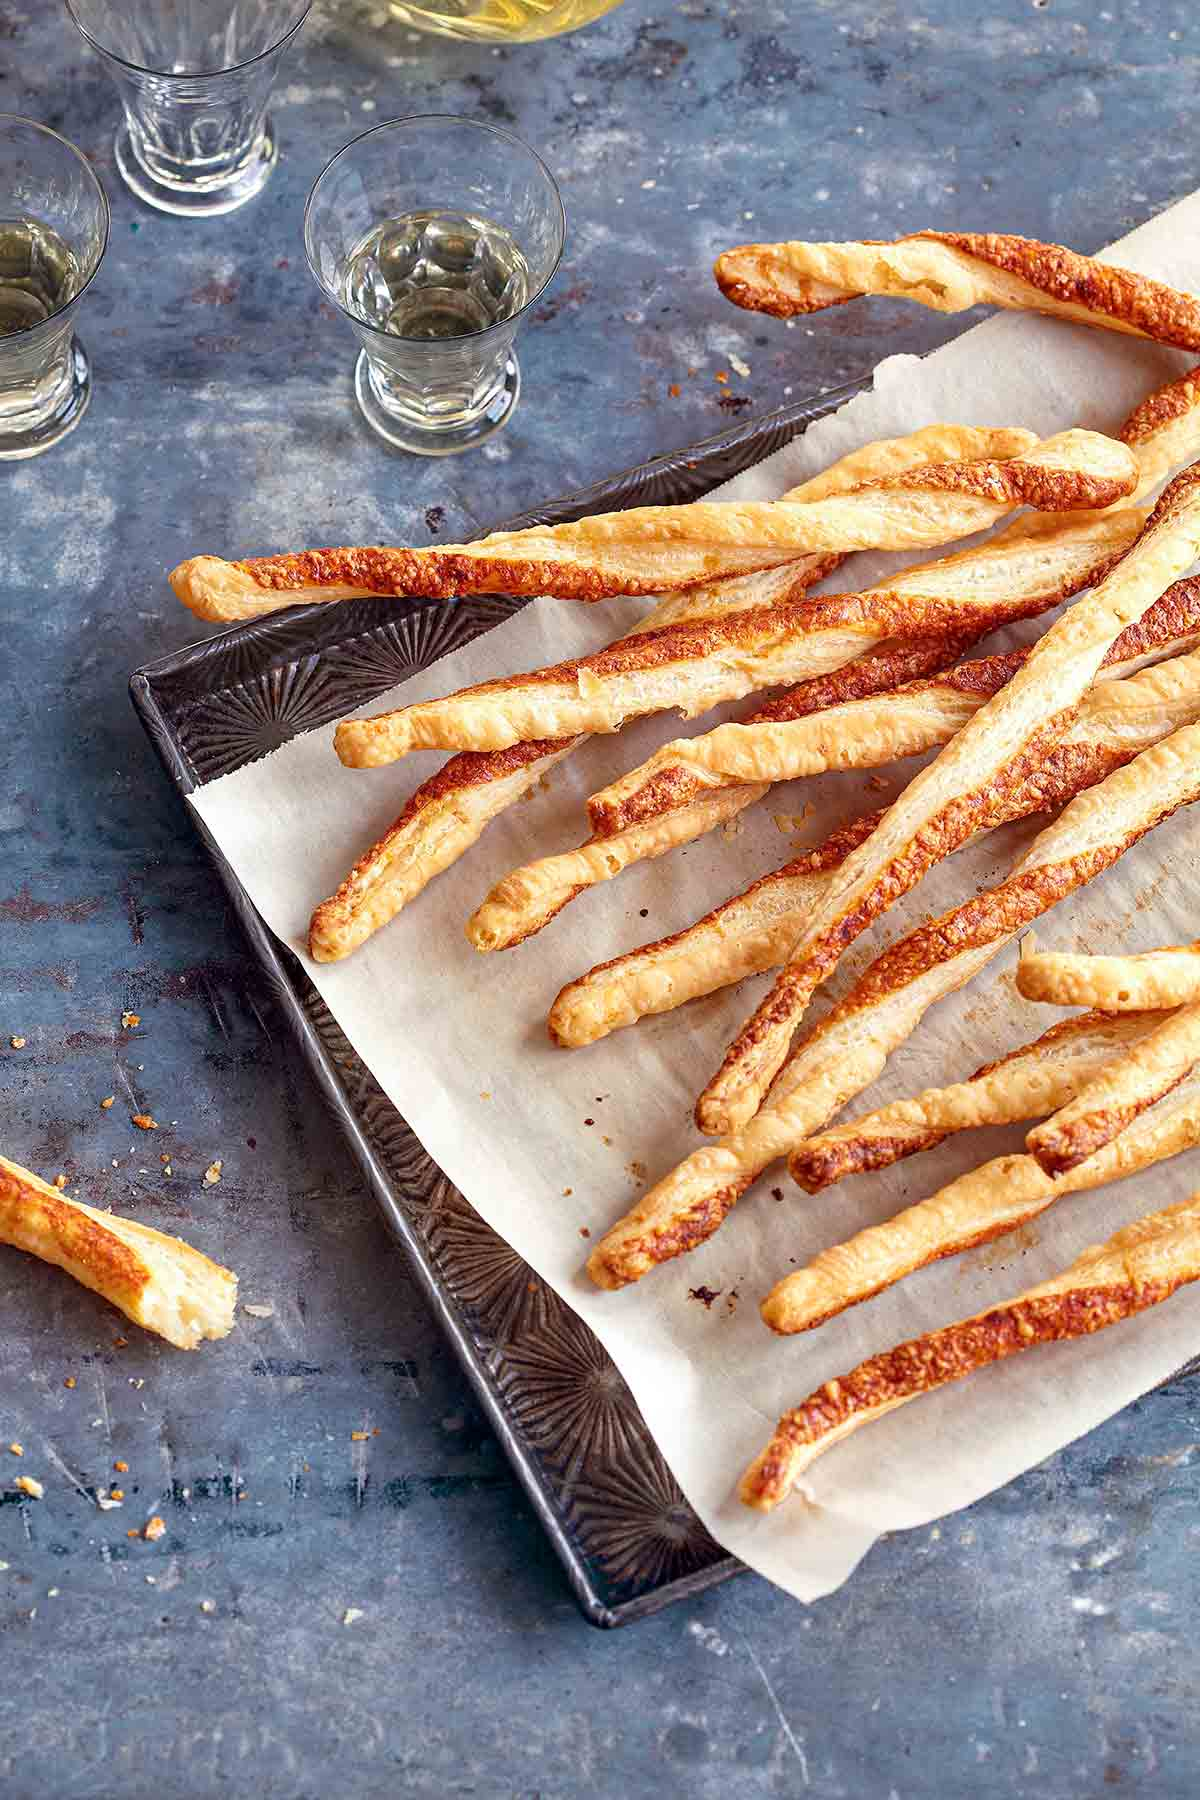 A layer of parmesan twists on a parchment-lined baking sheet.